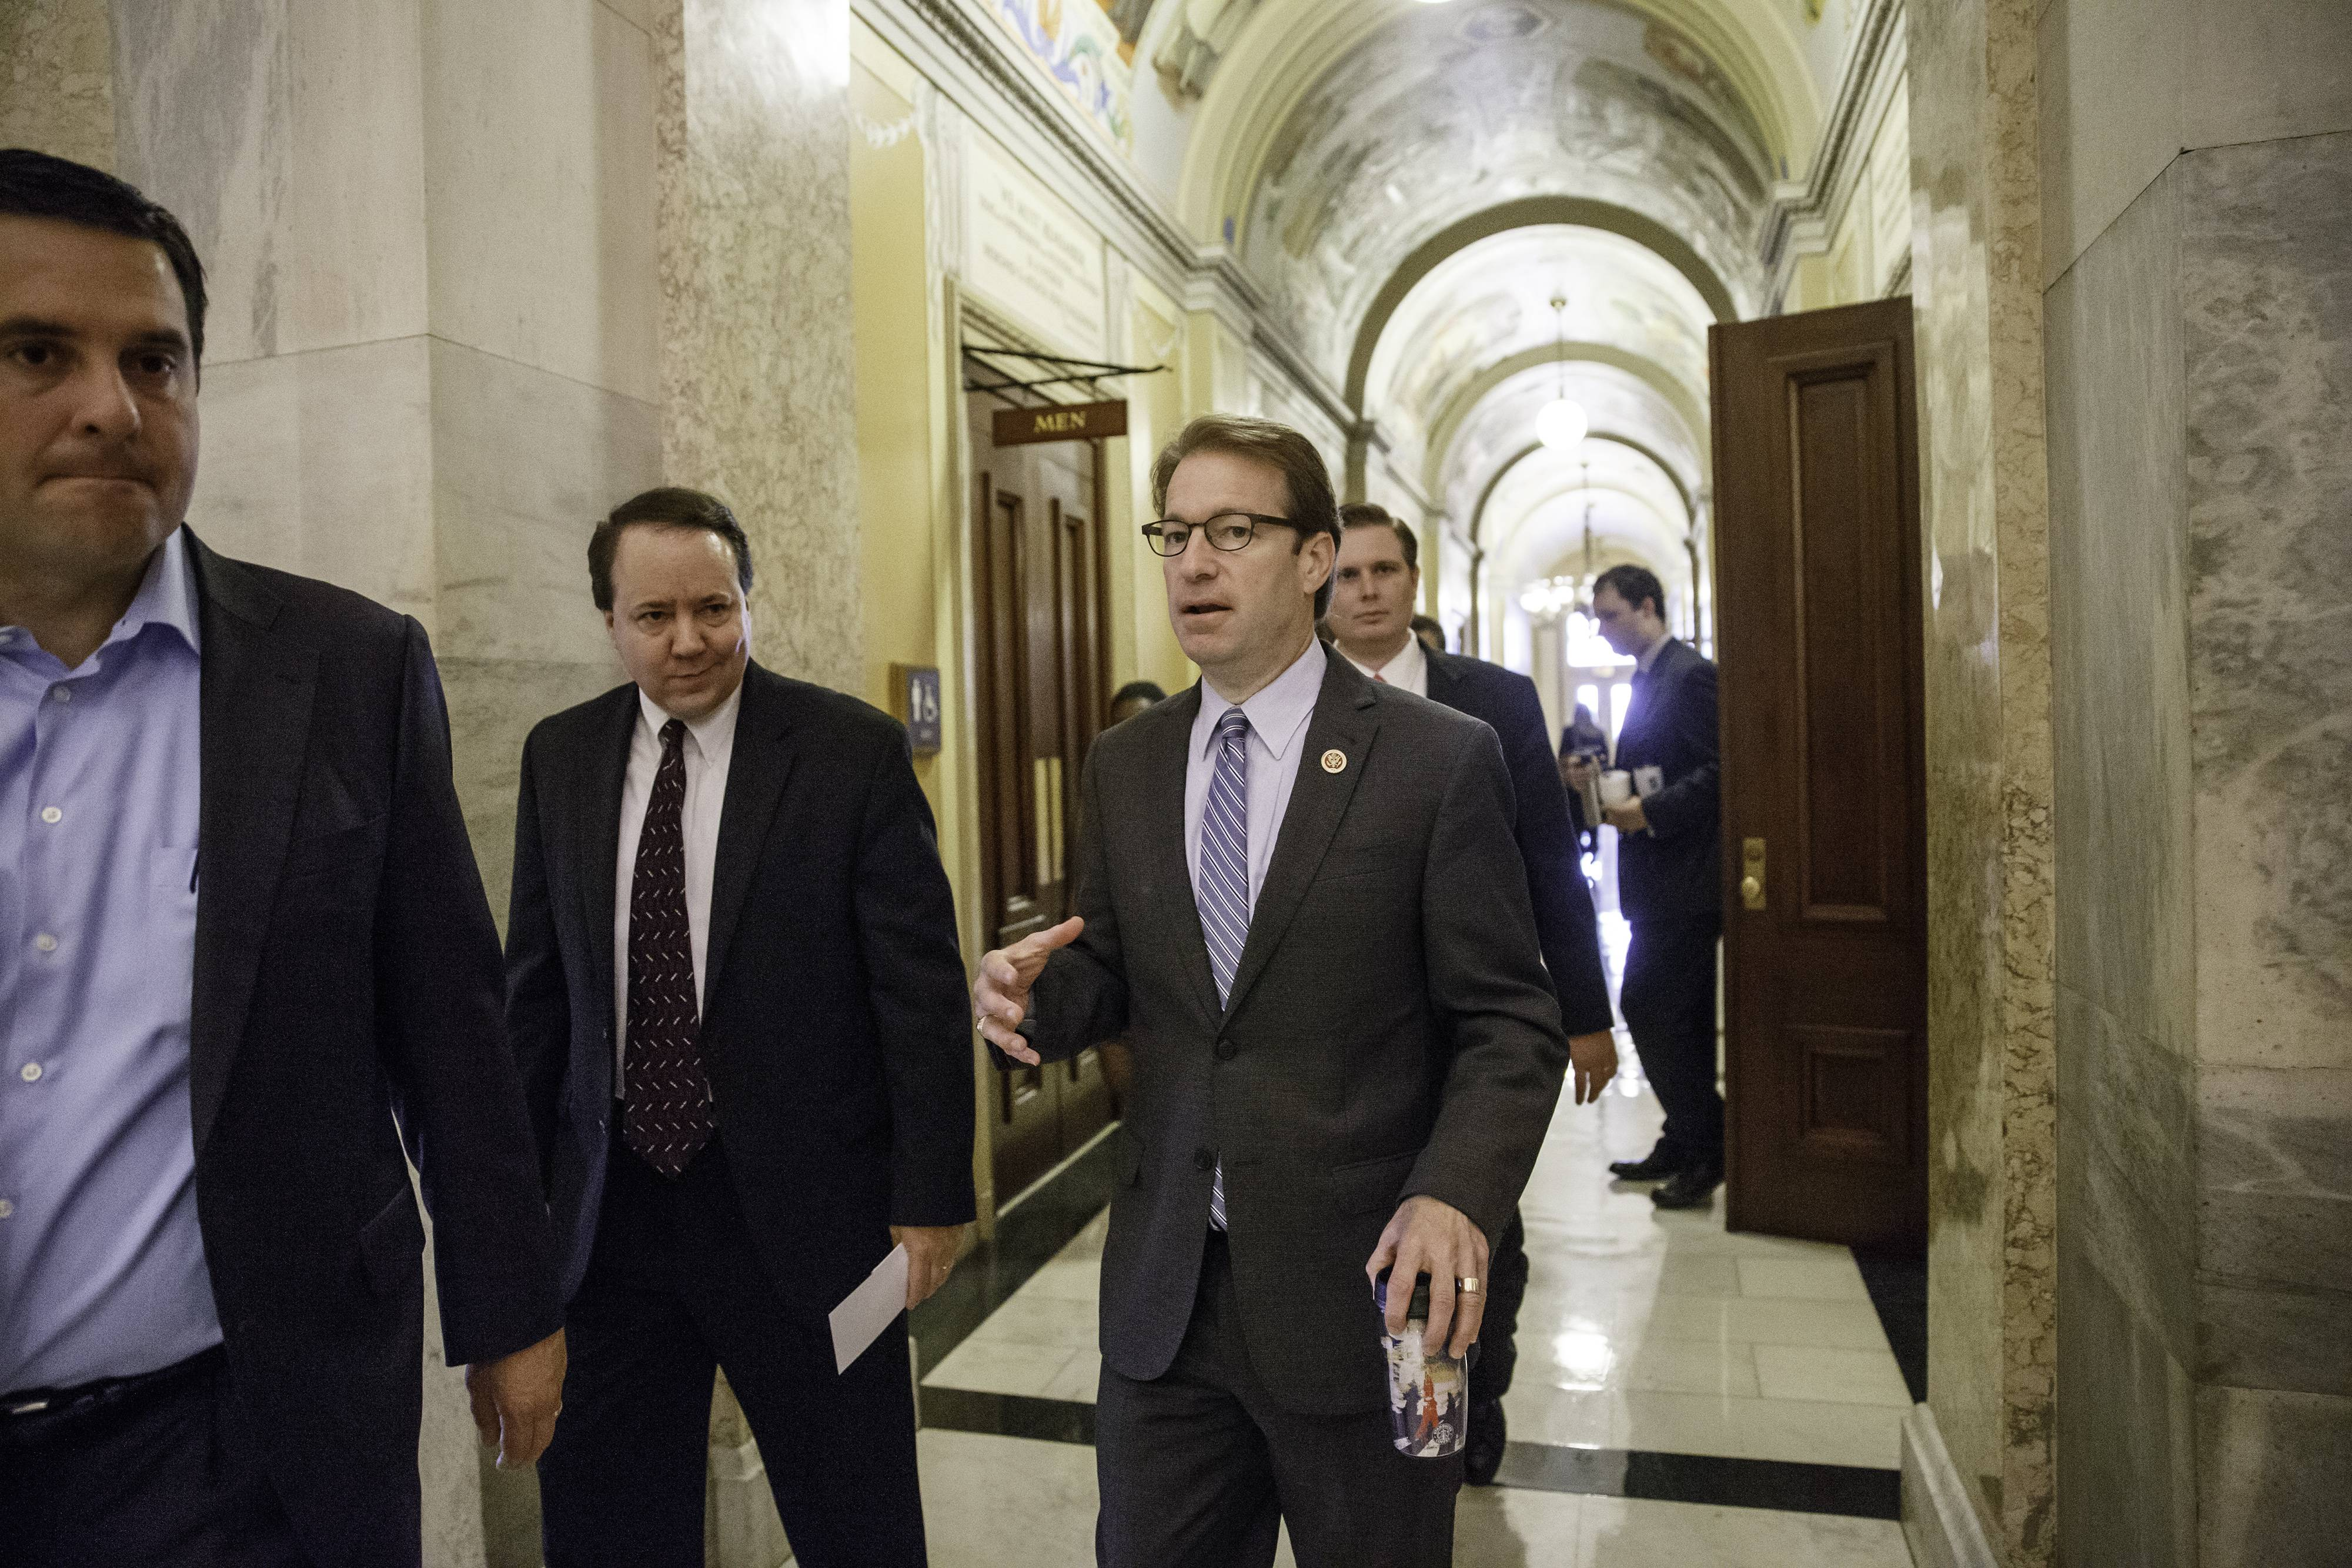 U.S. Rep. Peter Roskam of Wheaton speaks with Republican Reps. Devin Nunes of California, left, and Pat Tiberi of Ohio before a leadership vote Thursday at the Capitol in Washington, D.C.